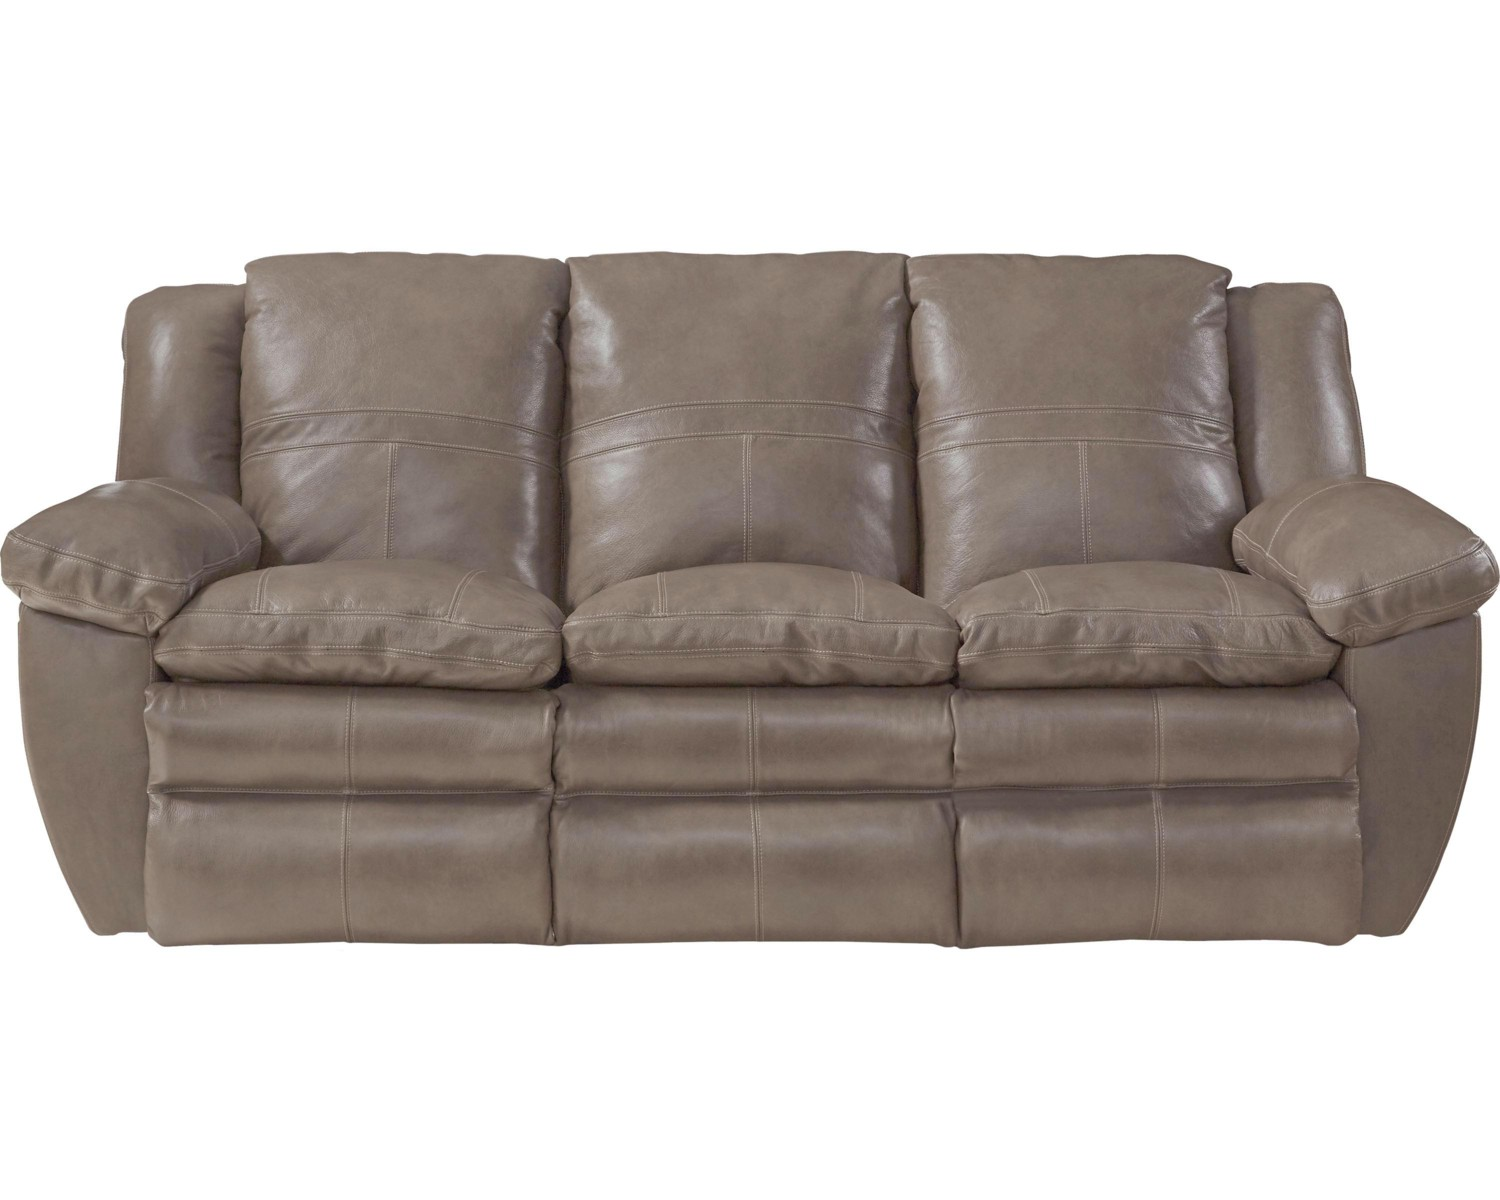 Catnapper Aria Power Lay Flat Reclining Sofa In Smoke CODE:UNIV20 For 20%  Off